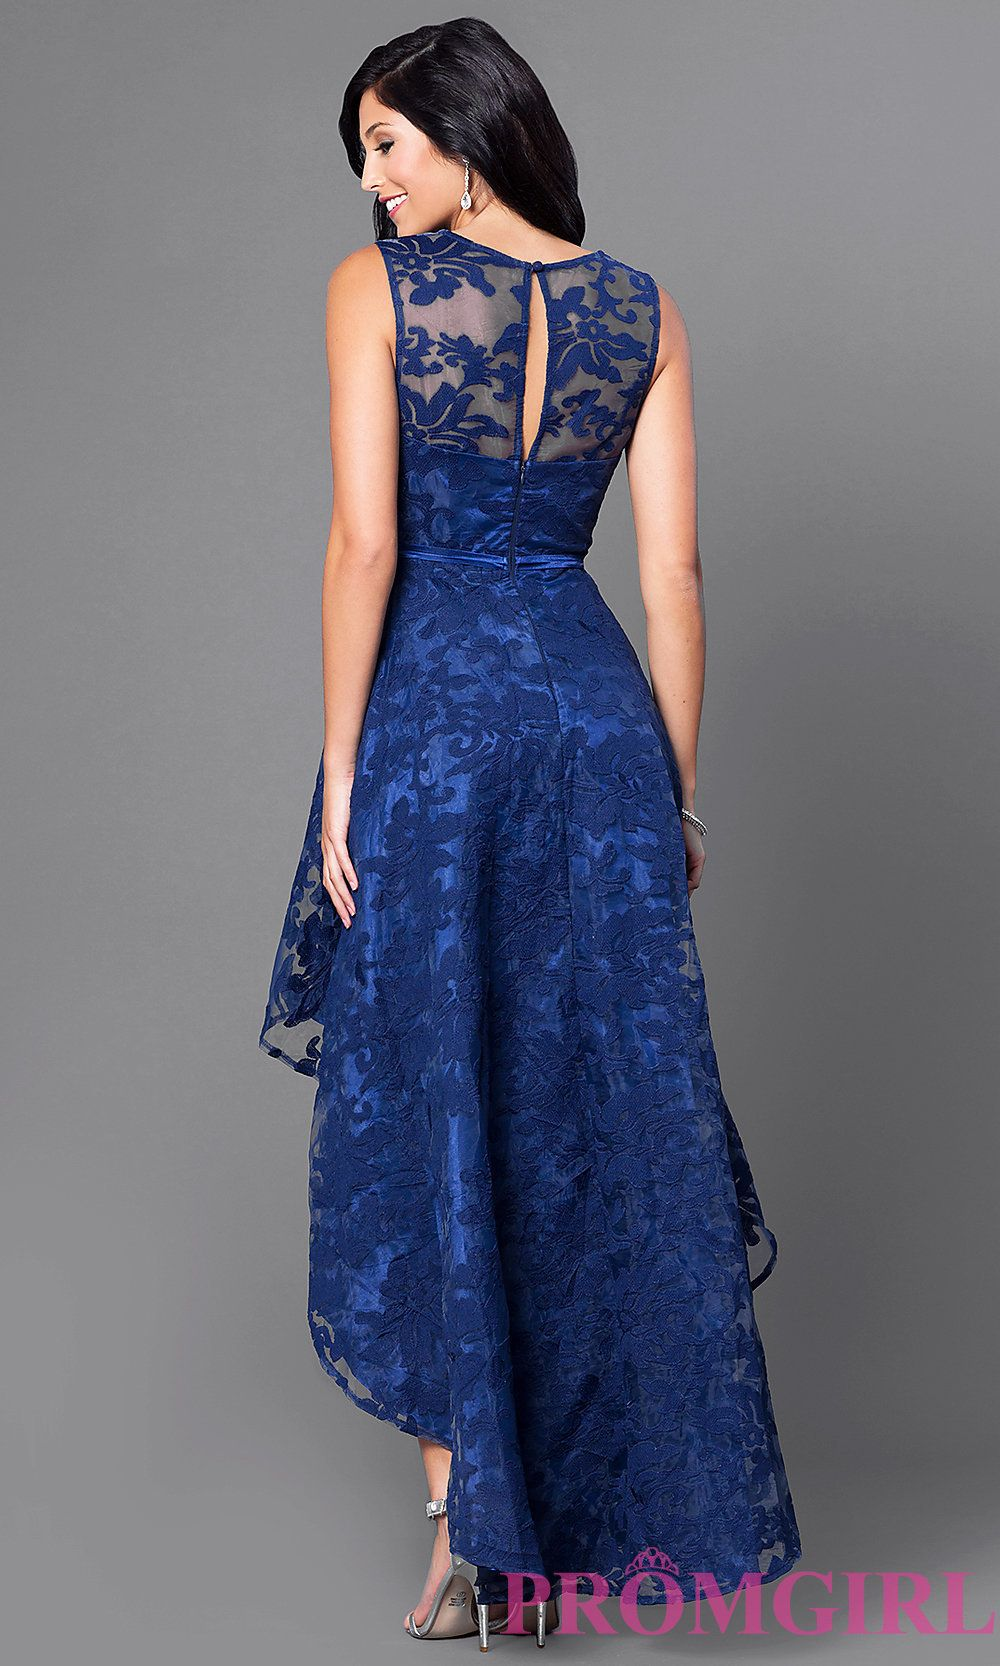 Image Of High Low Lace Sleeveless Semi Formal Dress Back